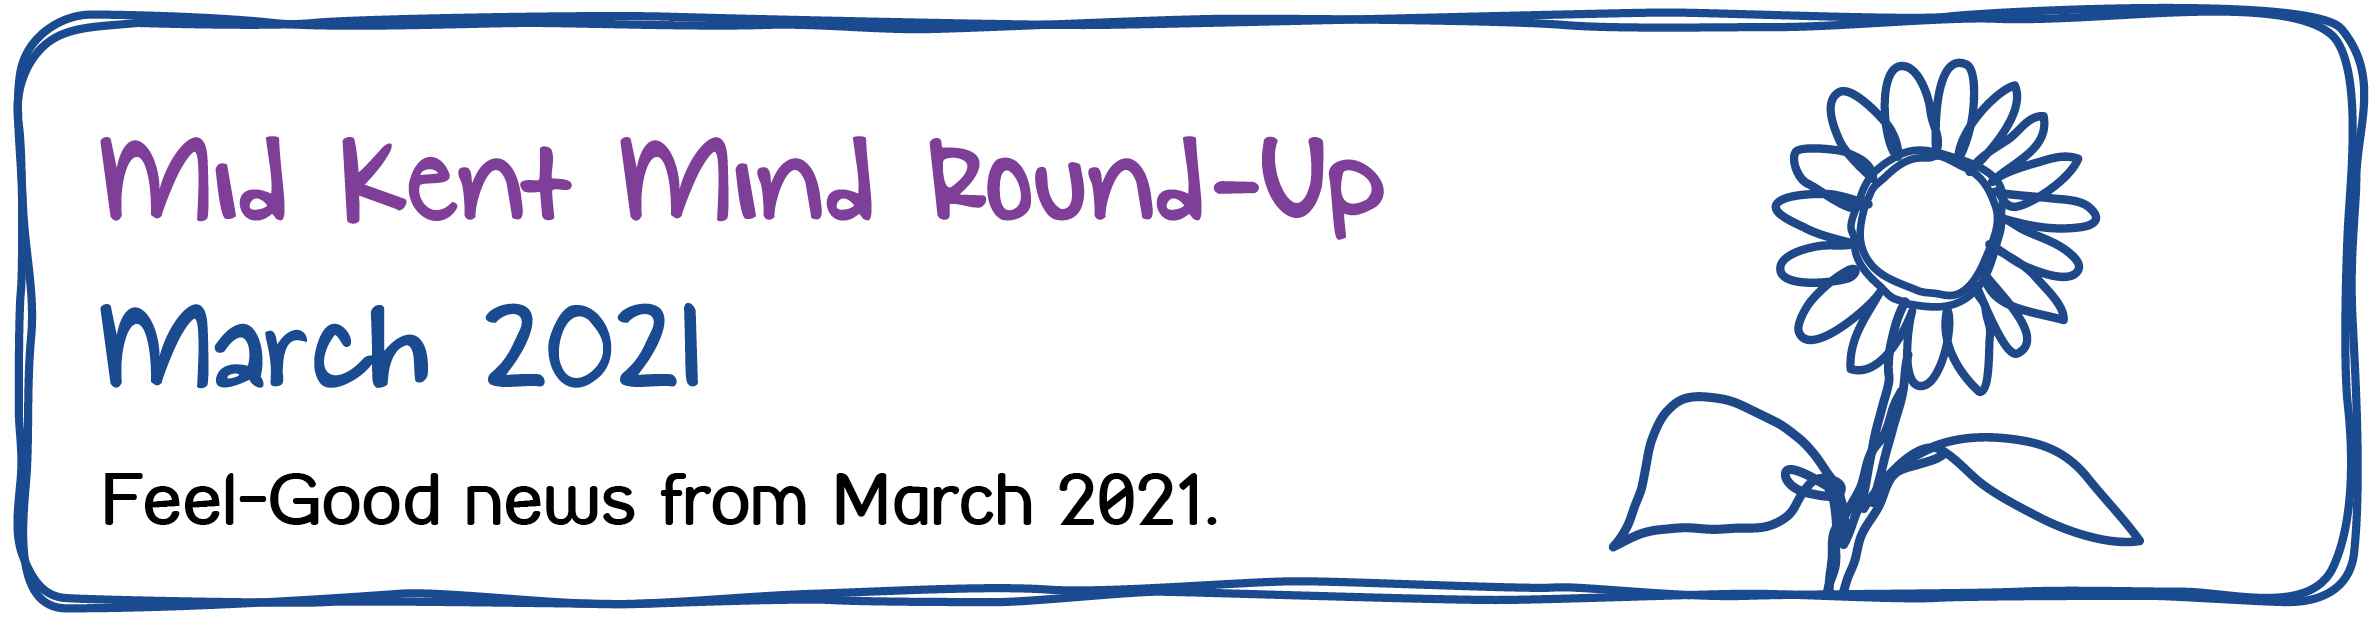 Mid Kent Mind Newsletter - March 2021 - Mid Kent Mind Round-Up. March 2021. Feel-Good news from March 2021.